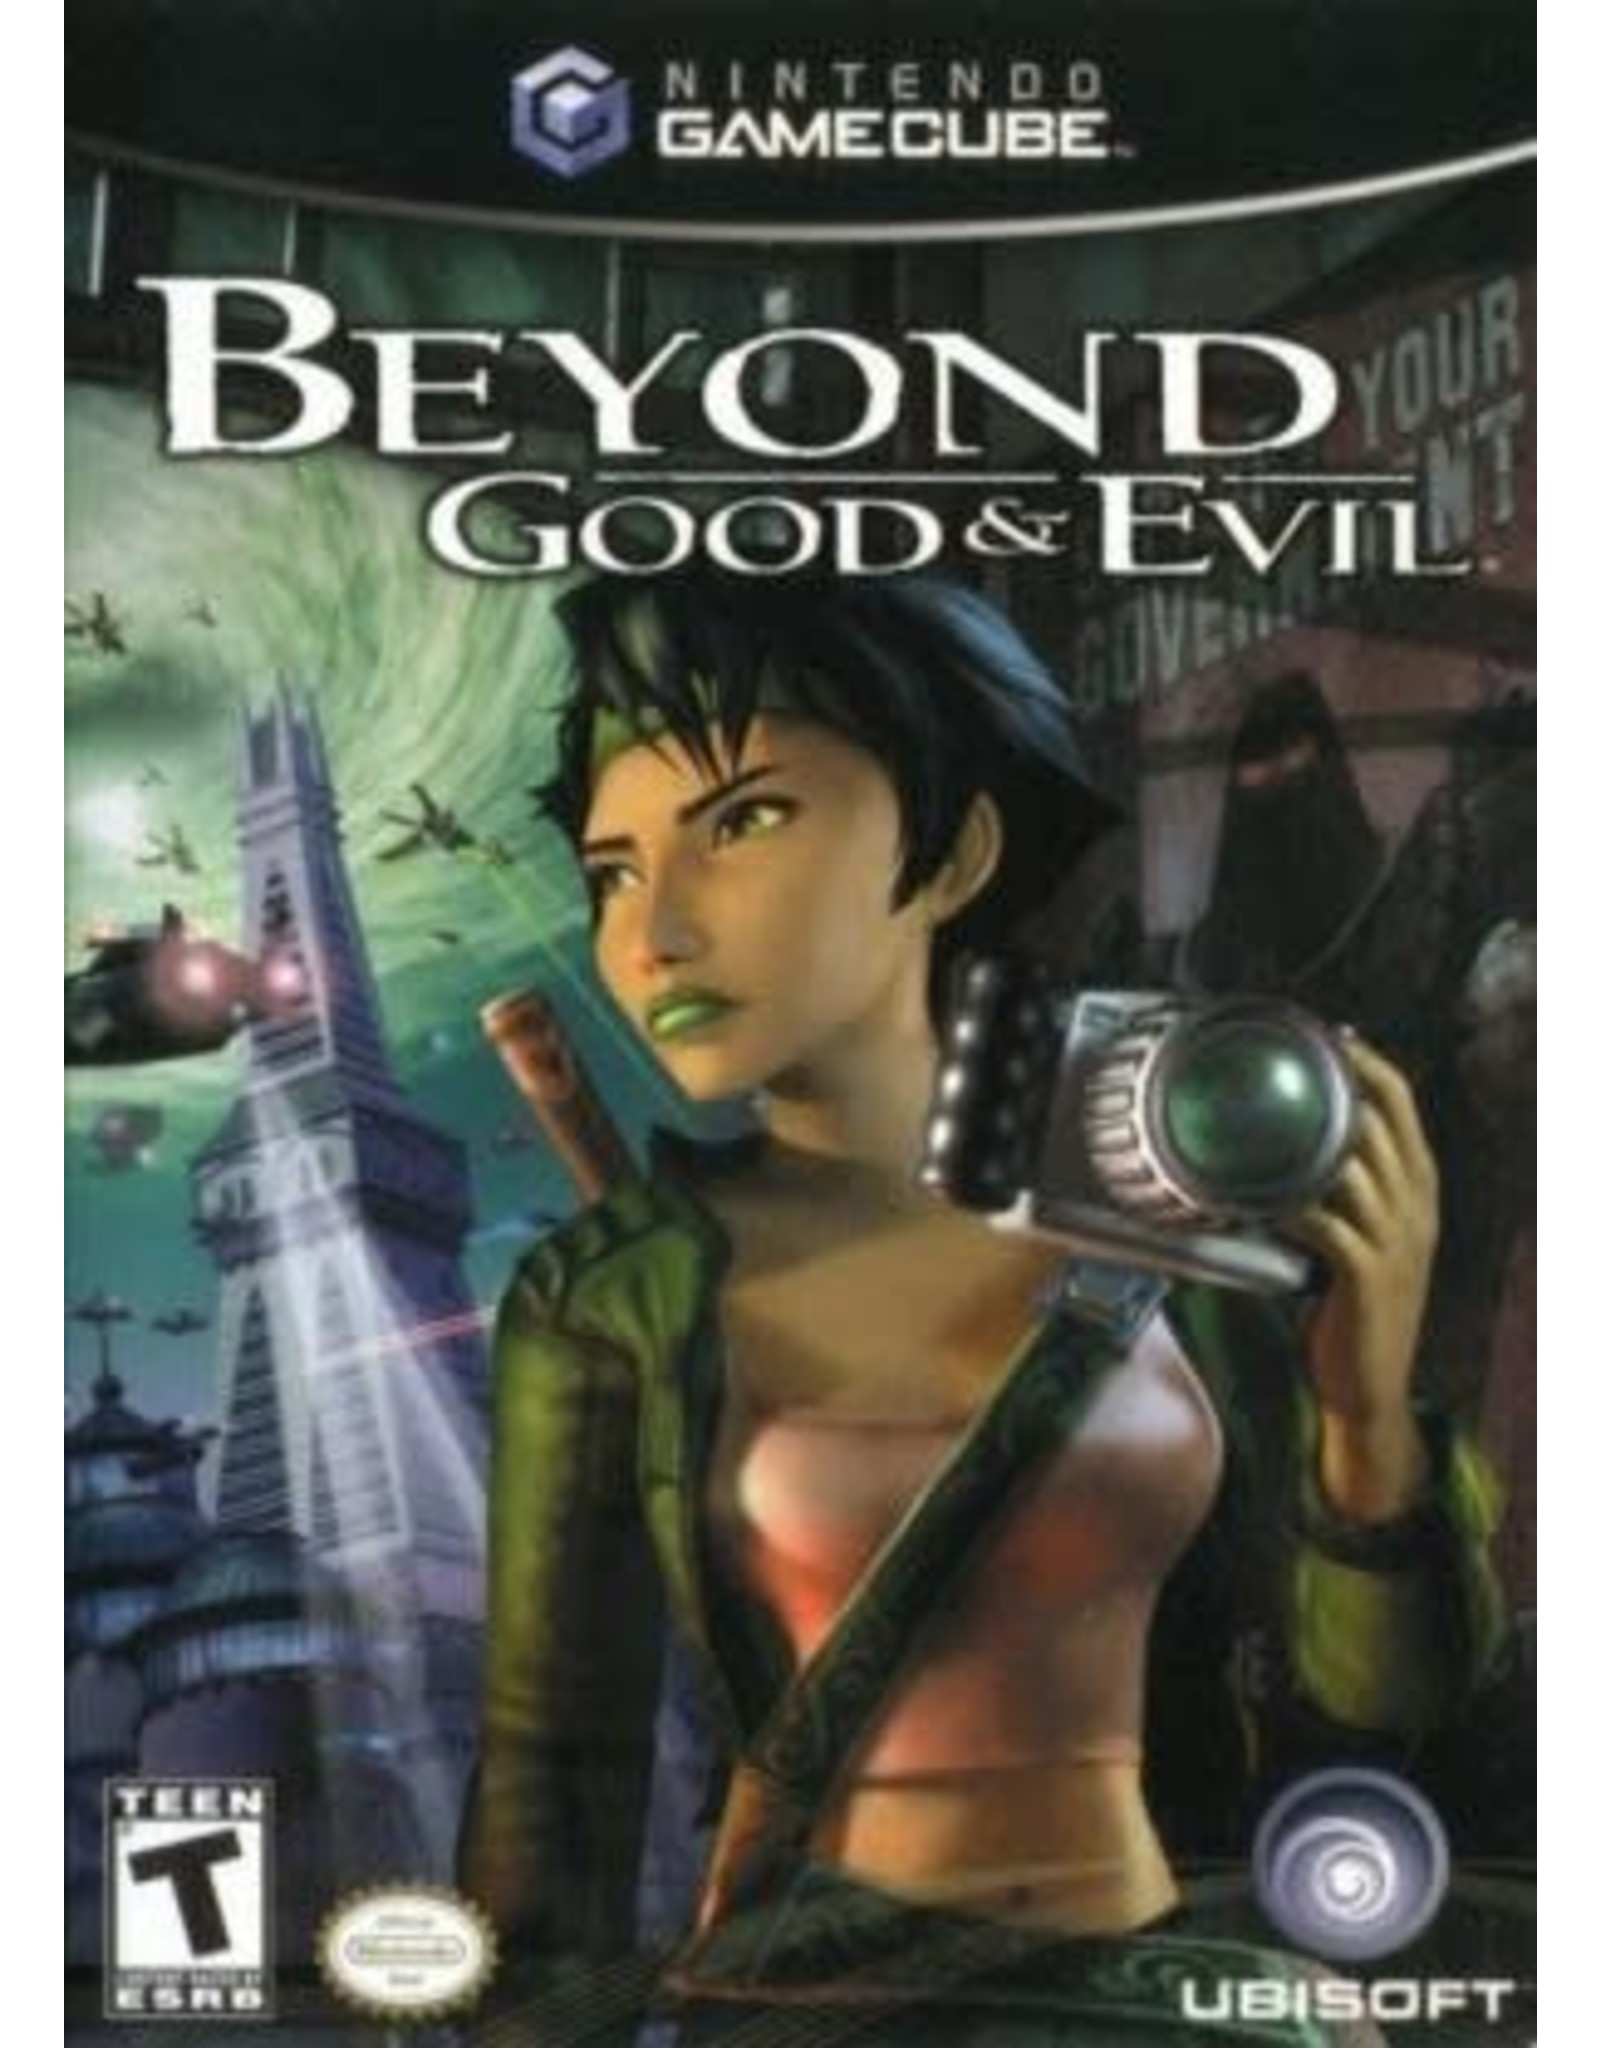 Gamecube Beyond Good and Evil (CIB)